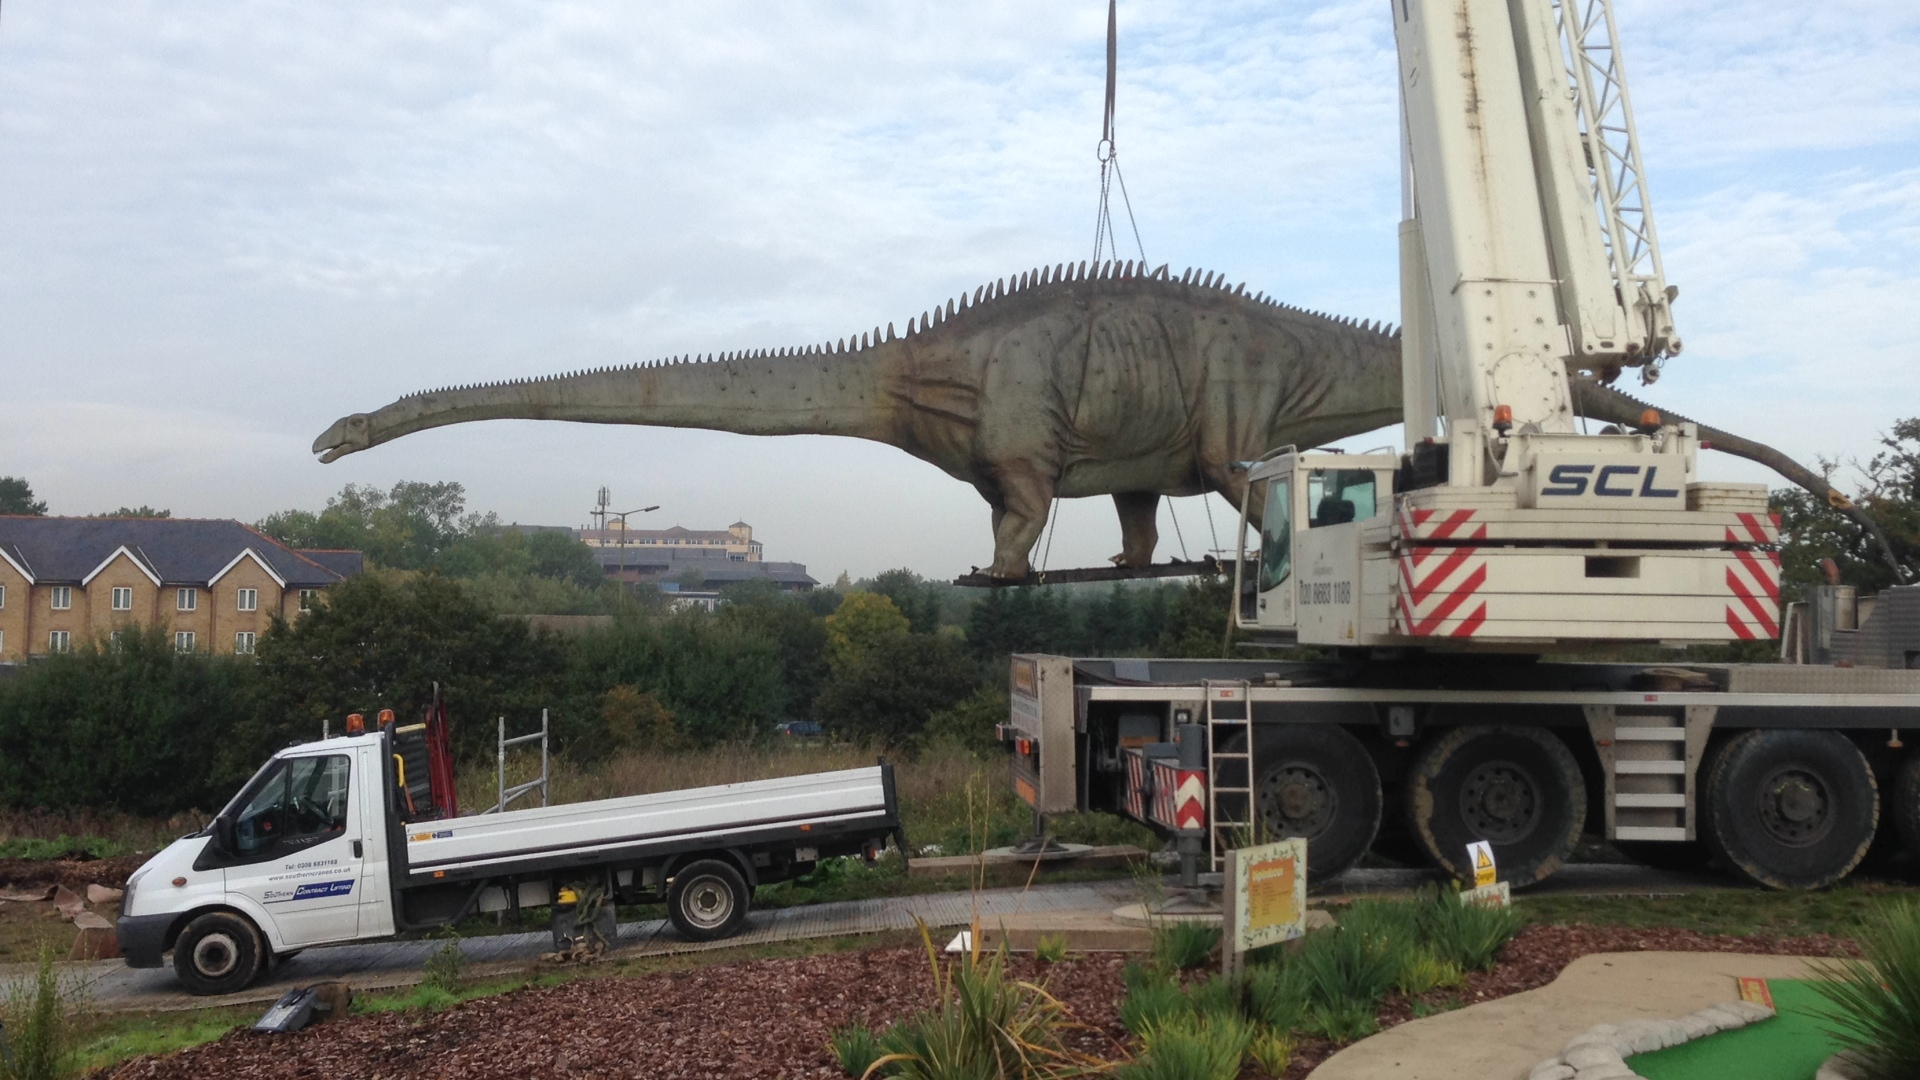 Giant operation to move 100-foot dinosaur takes place